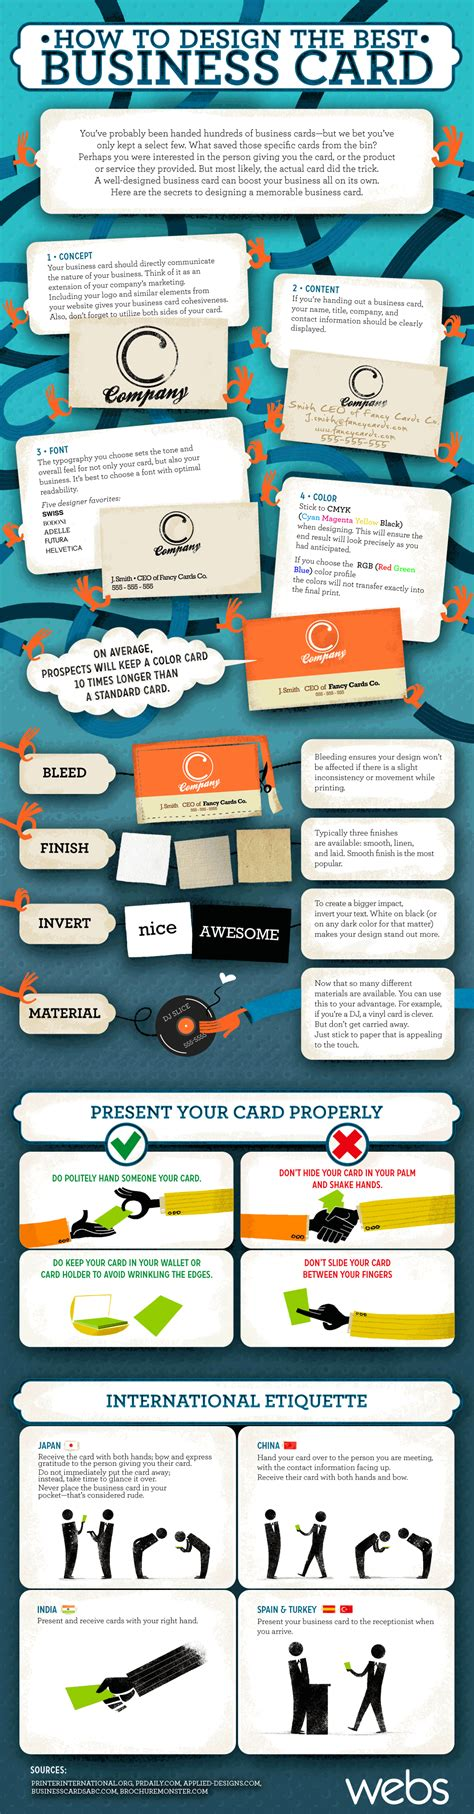 how to make the best business card how to design the best business card visual ly